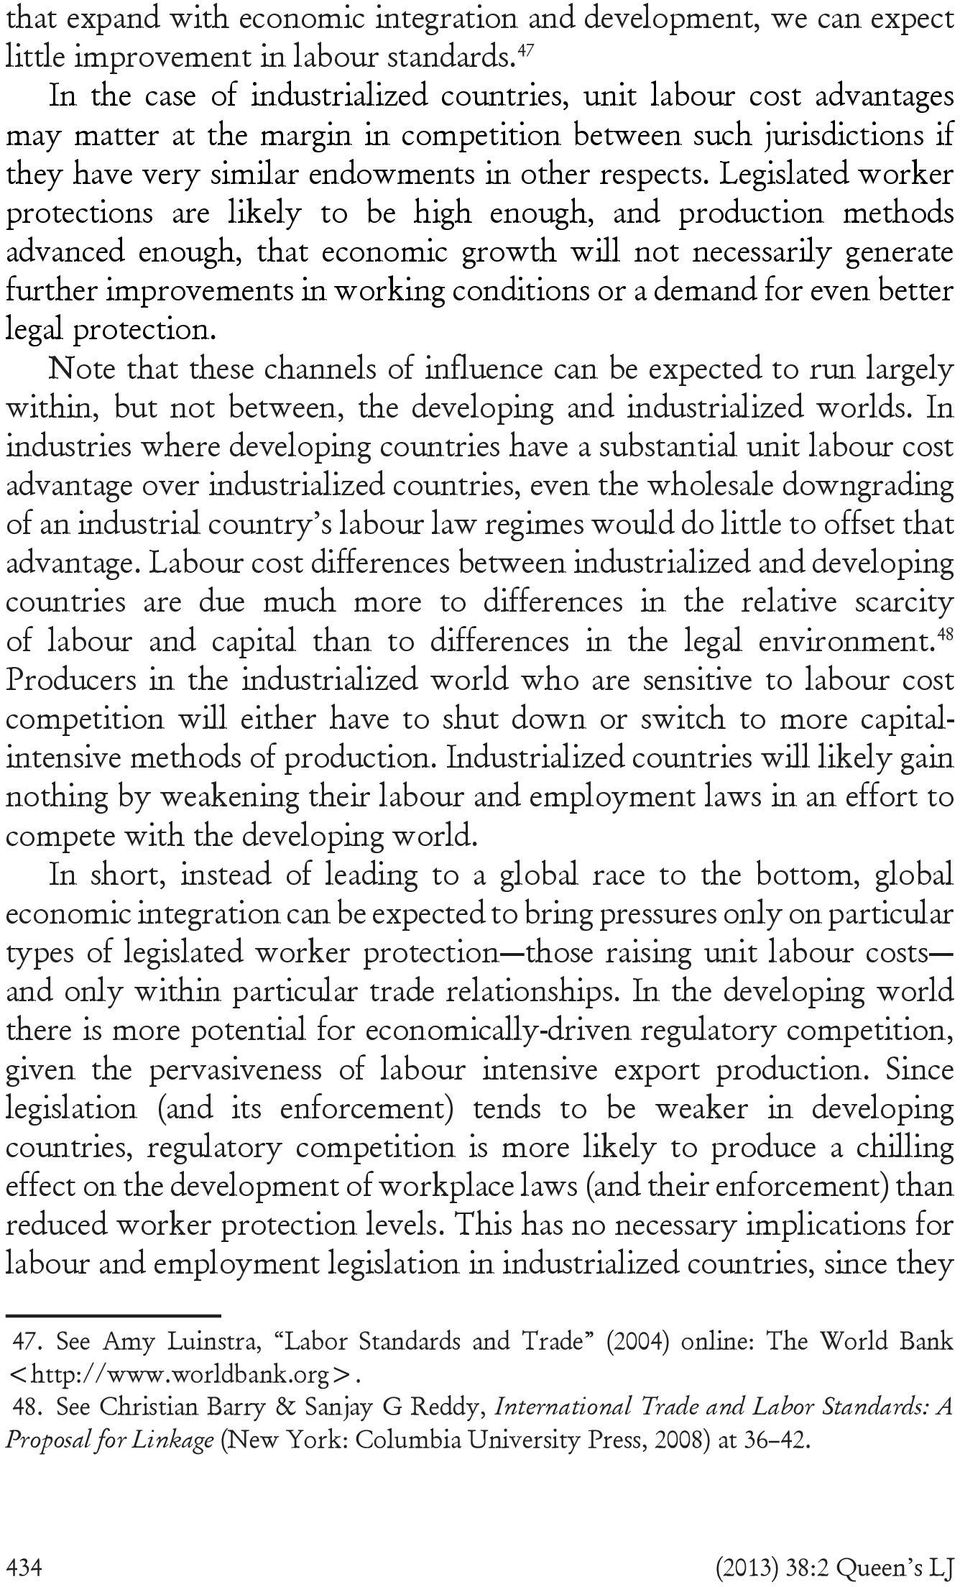 Legislated worker protections are likely to be high enough, and production methods advanced enough, that economic growth will not necessarily generate further improvements in working conditions or a